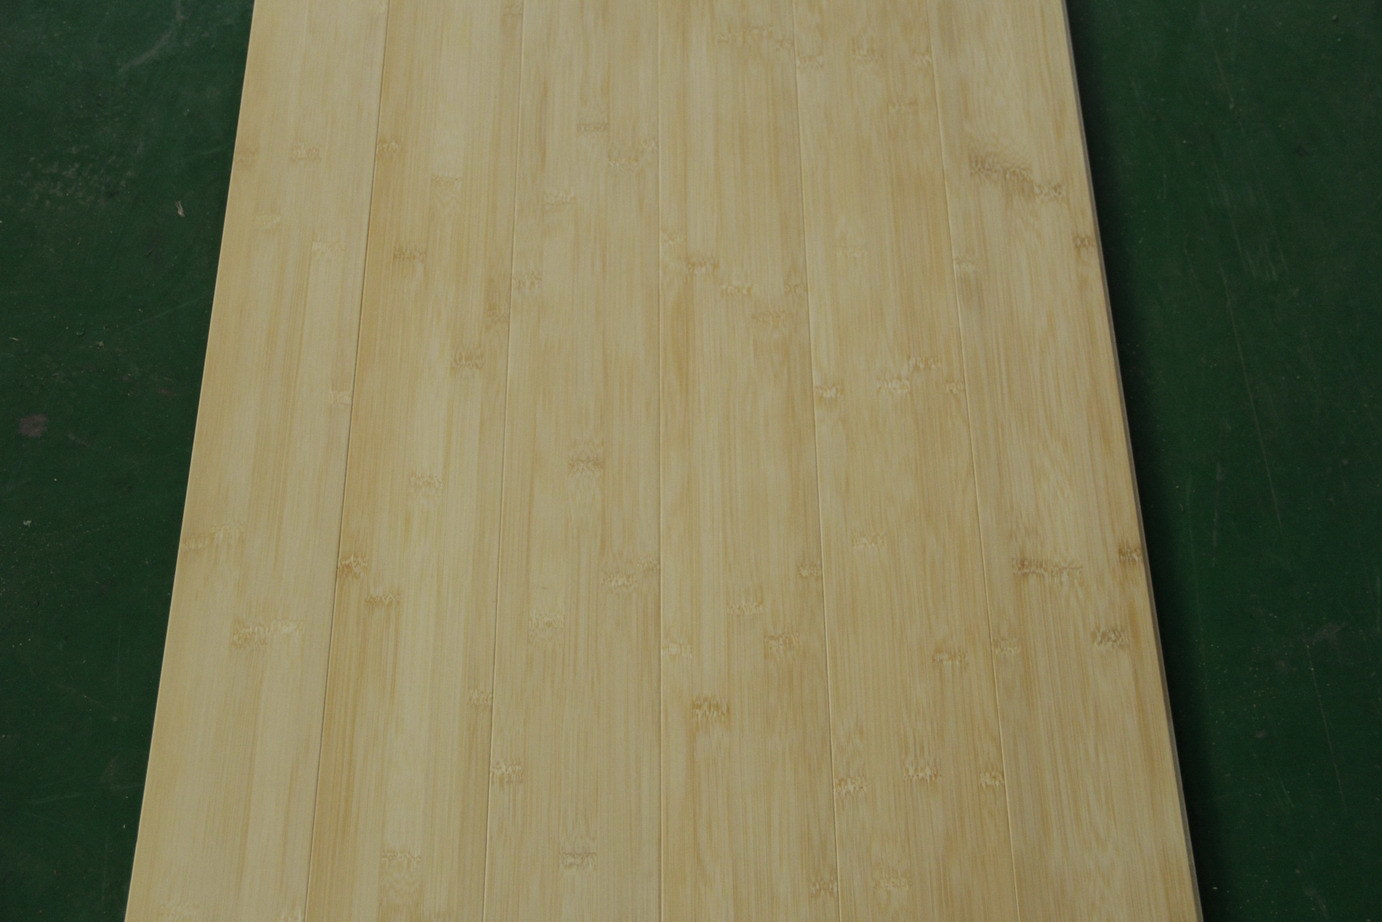 Solid Bamboo Flooring (NH 960*96*15mm)